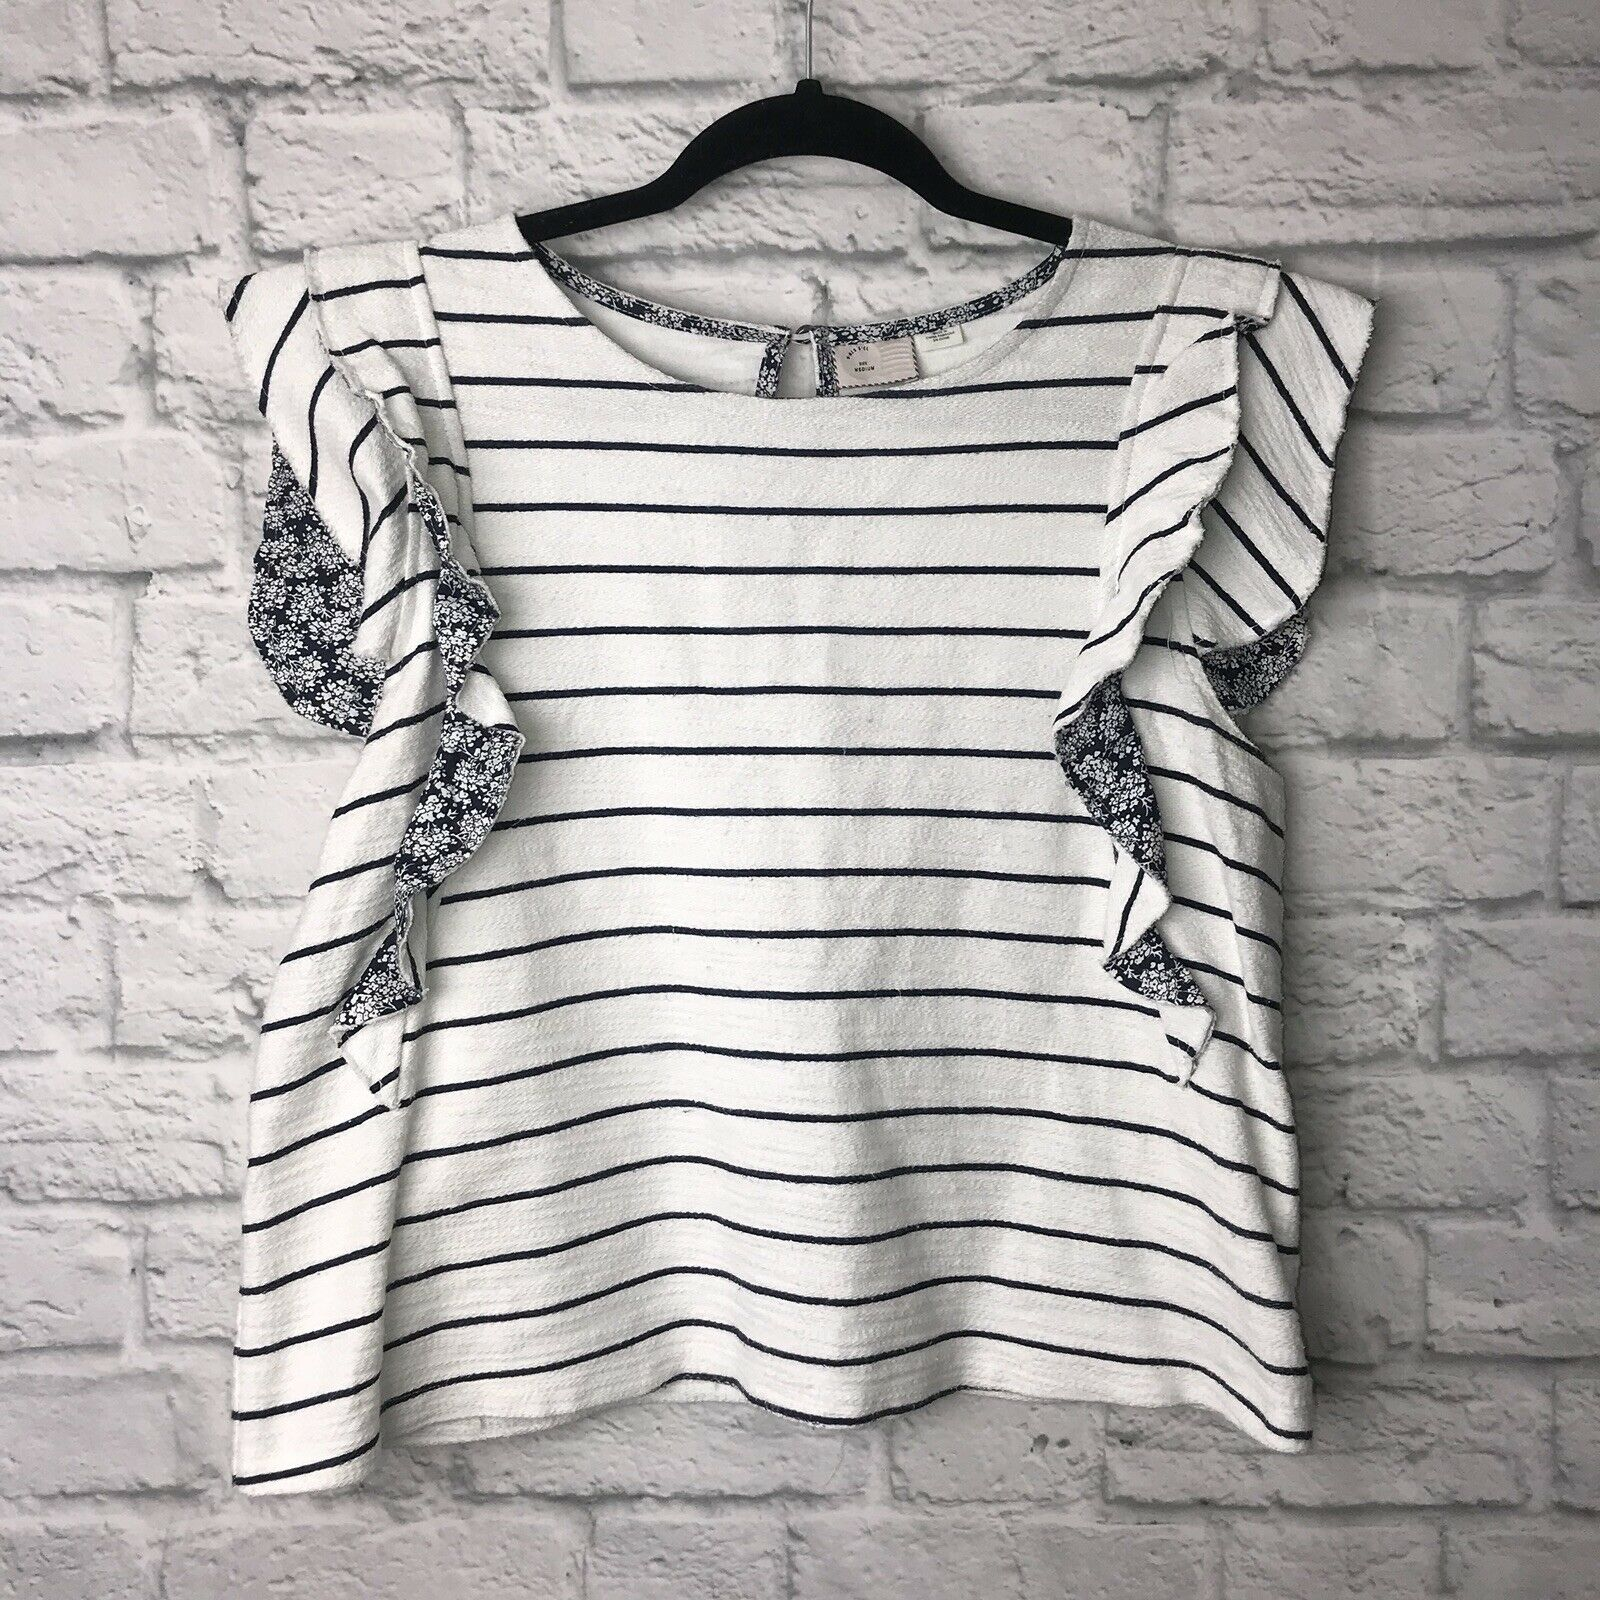 9-h15 stcl Anthropologie Striped Sleeveless Top M